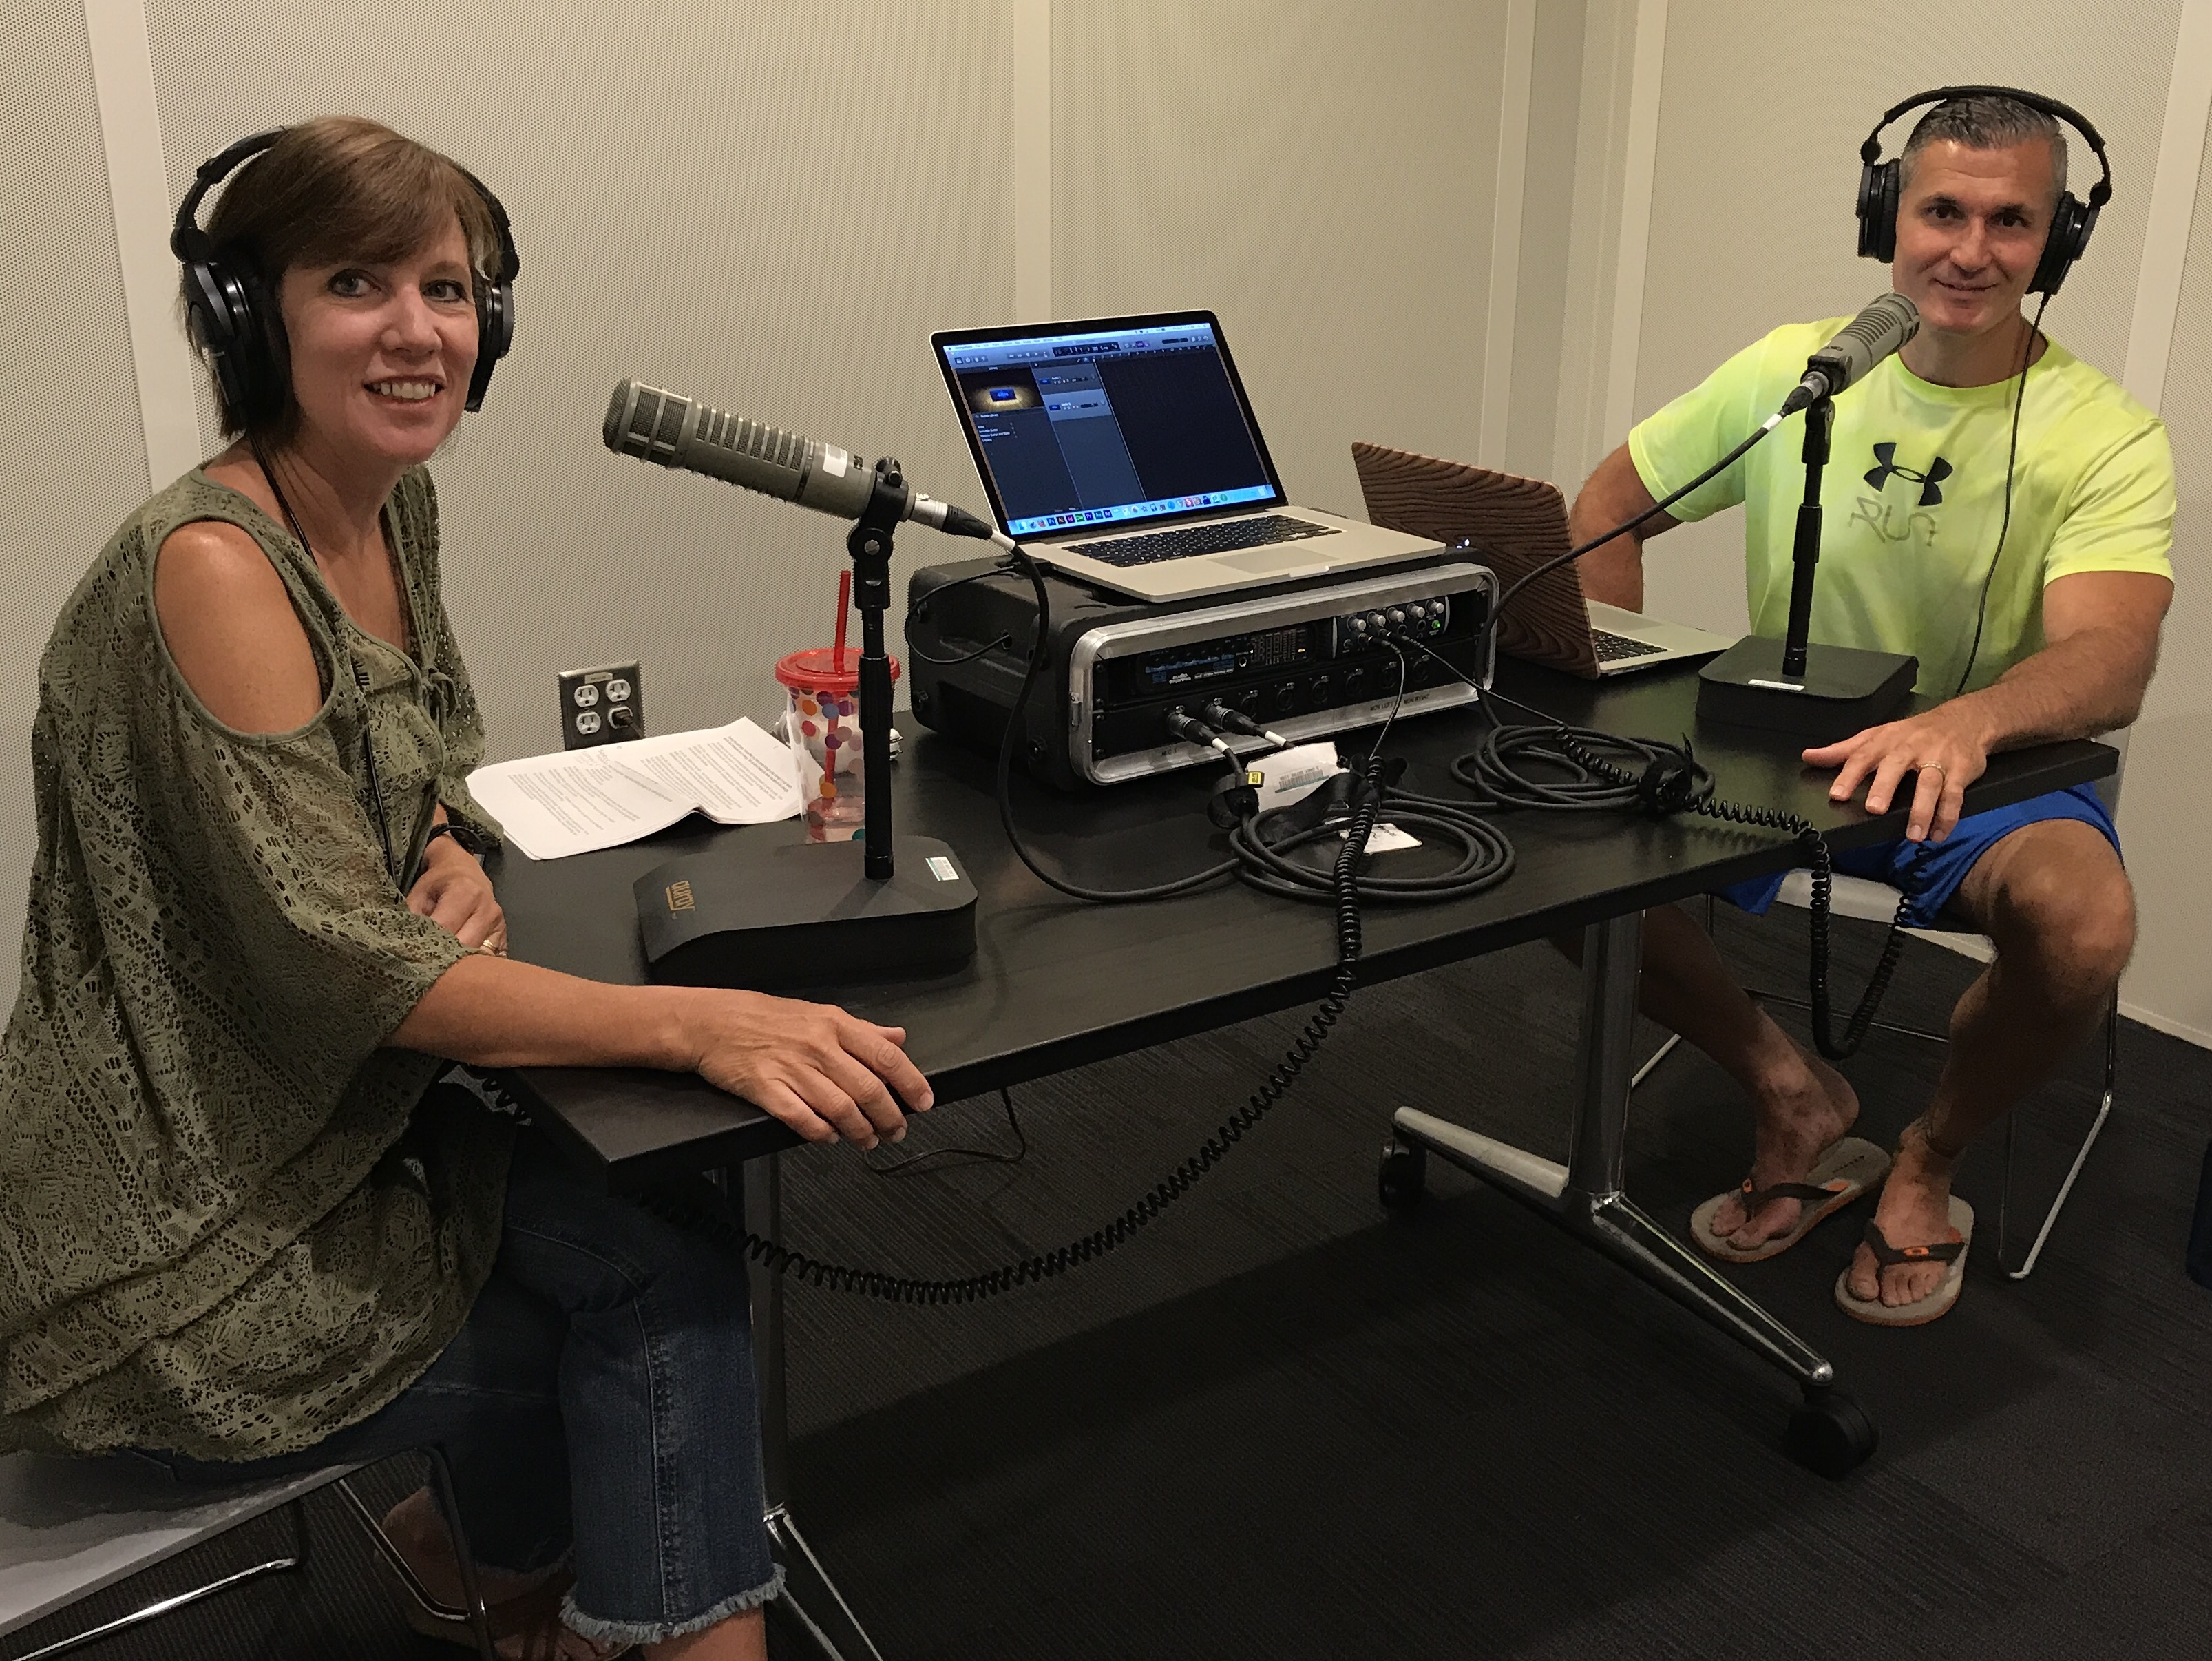 Listen to my story on The Energy Edge podcast